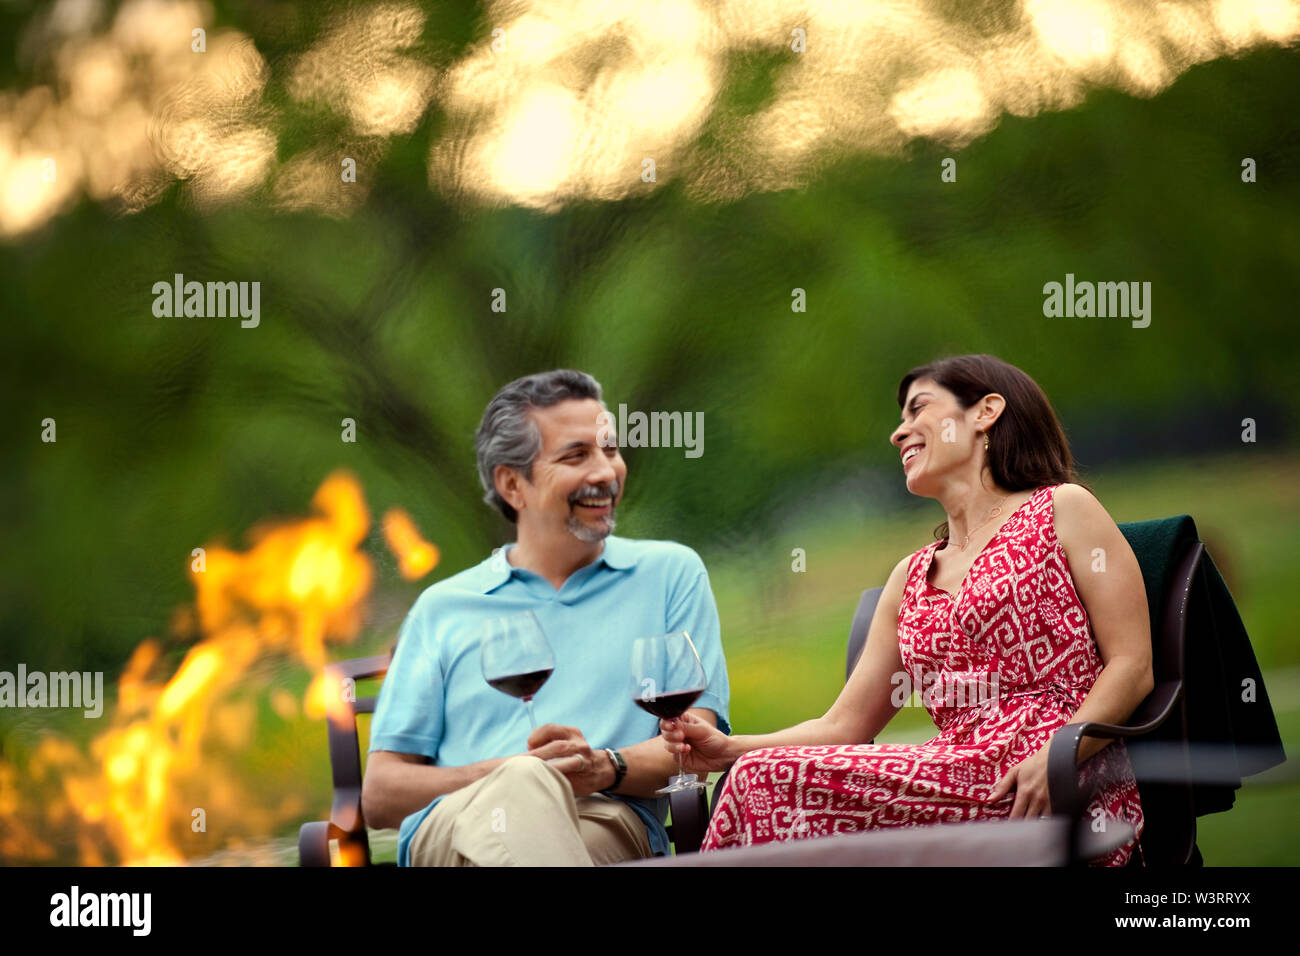 Smiling middle-aged couple relax with a glass of red wine beside a campfire in their garden in the late afternoon. Stock Photo